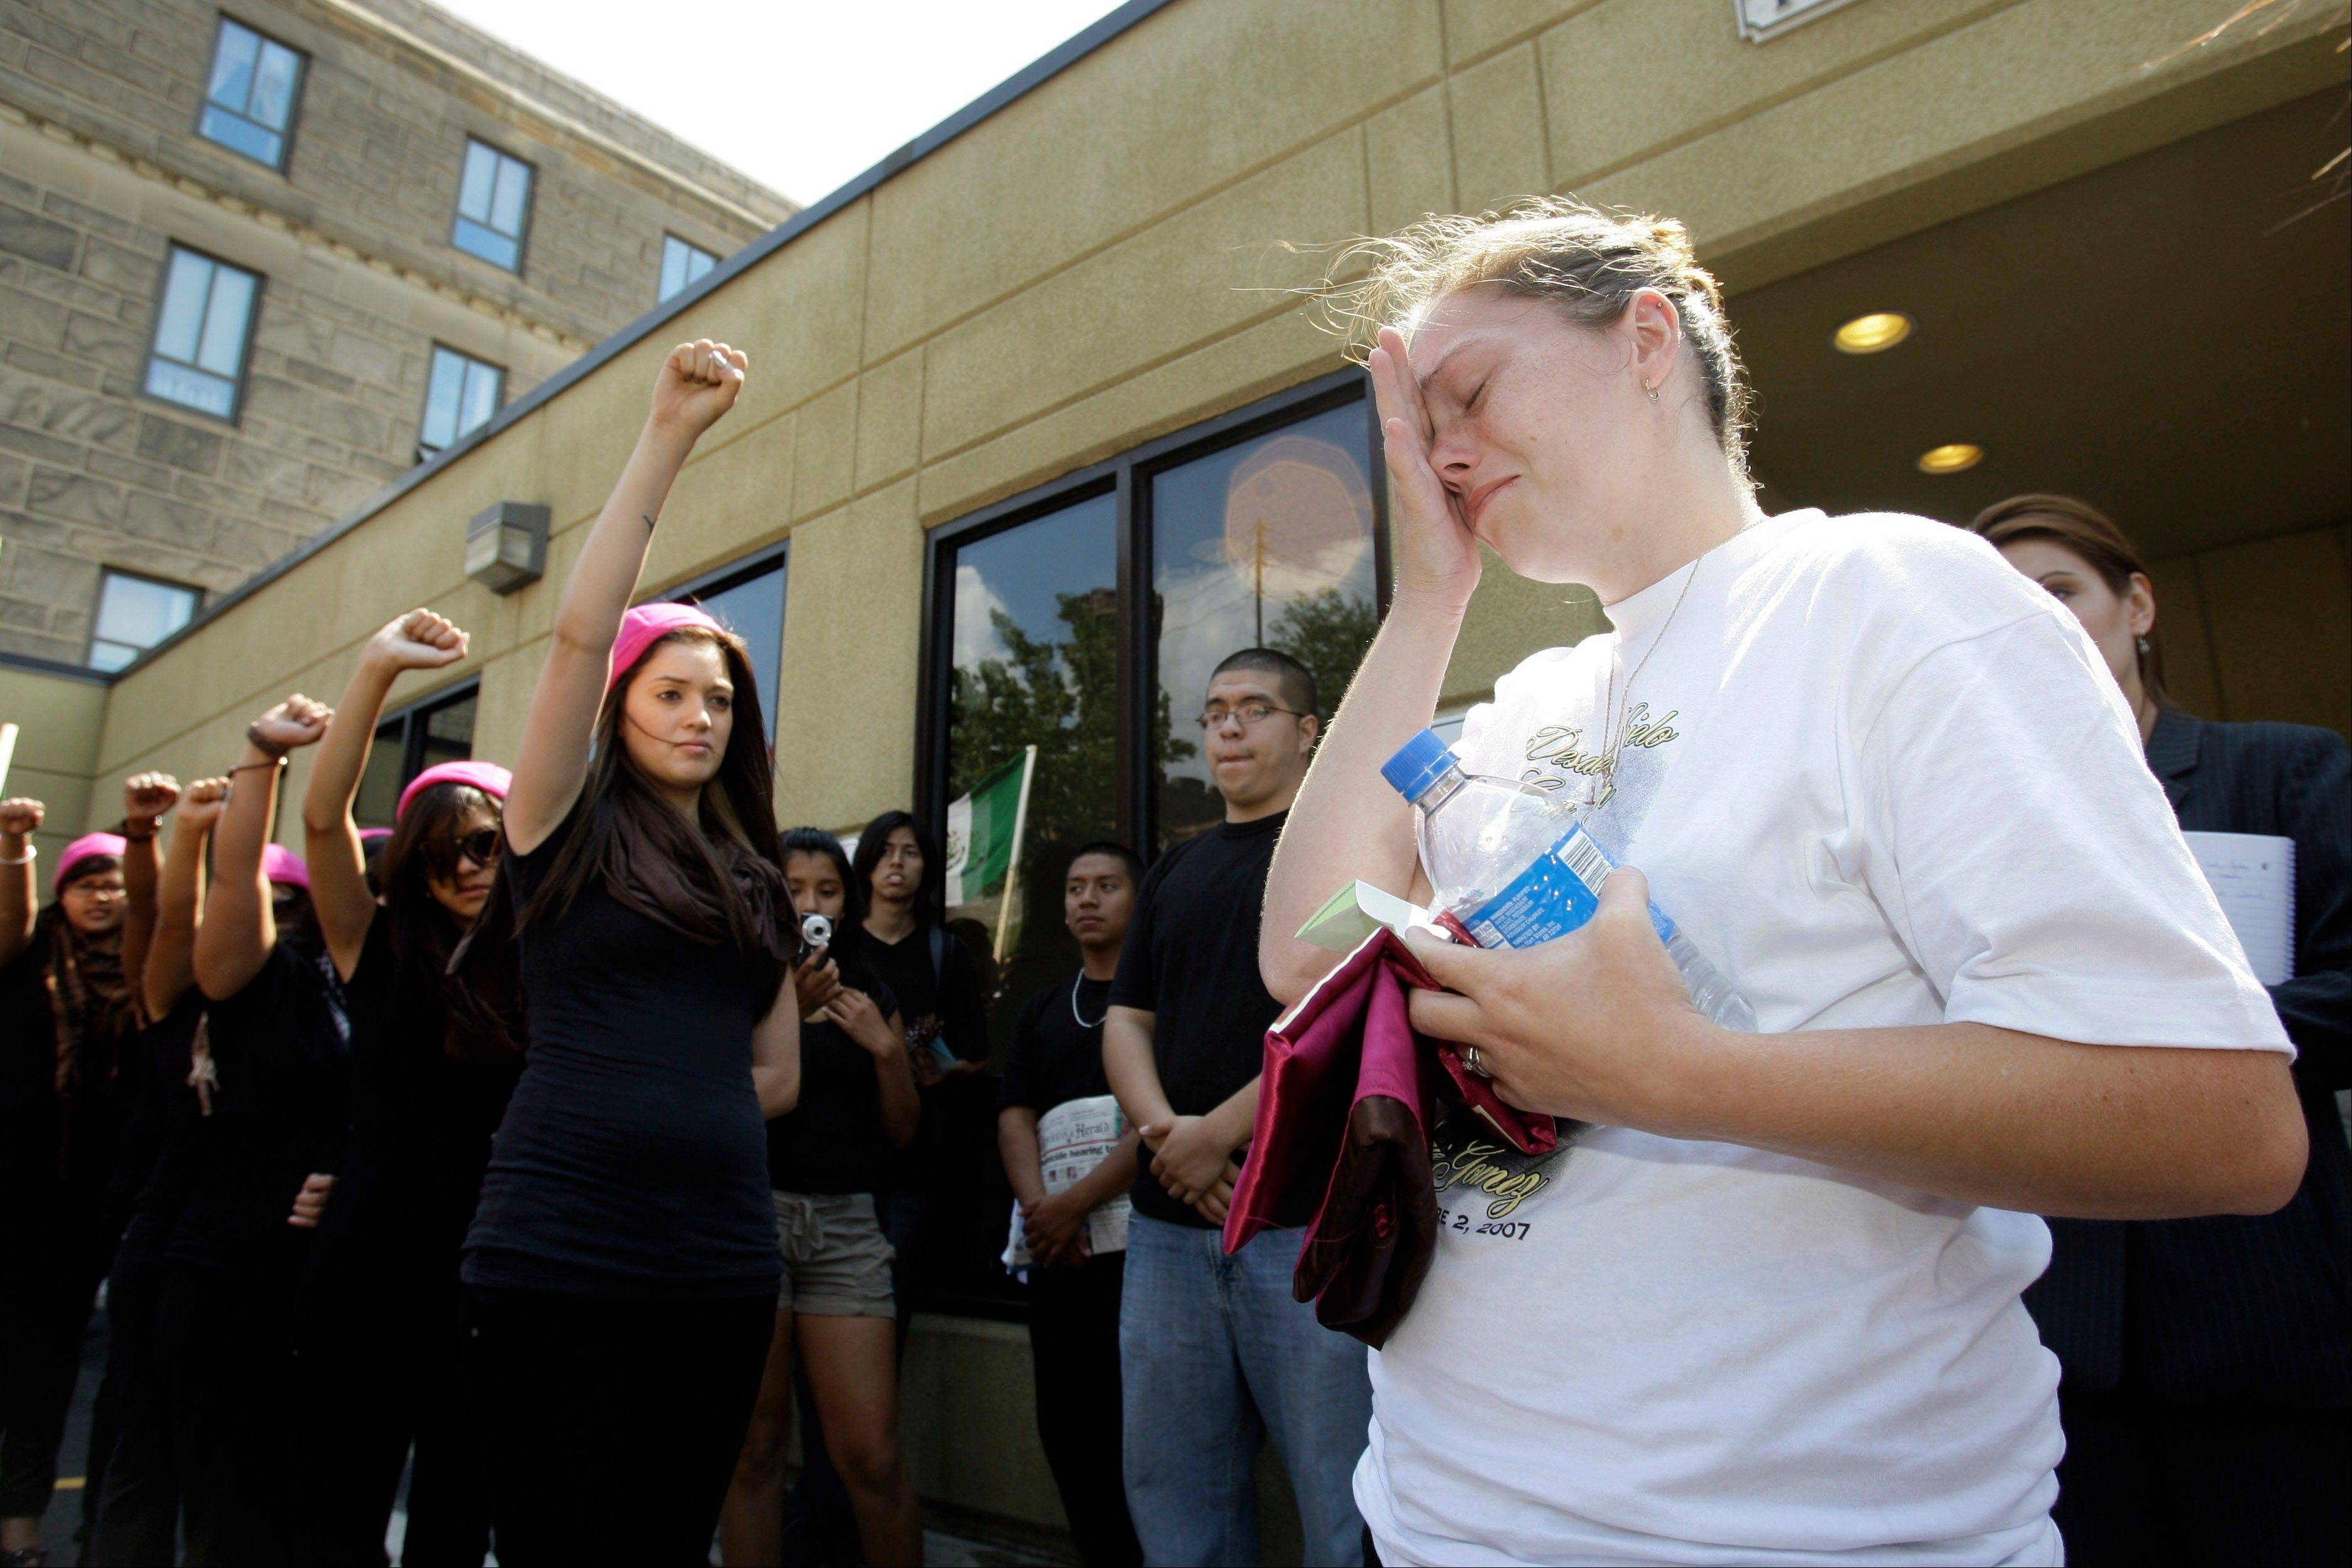 Crystal Dillman is moved to tears as members of Latina show their support, as she leaves a courthouse in Pottsville, Pa., on Aug. 18, 2008, following preliminary hearings for three suspects, charged in the beating death of her fiance Luis Ramirez, a 25-year-old Mexican immigrant.